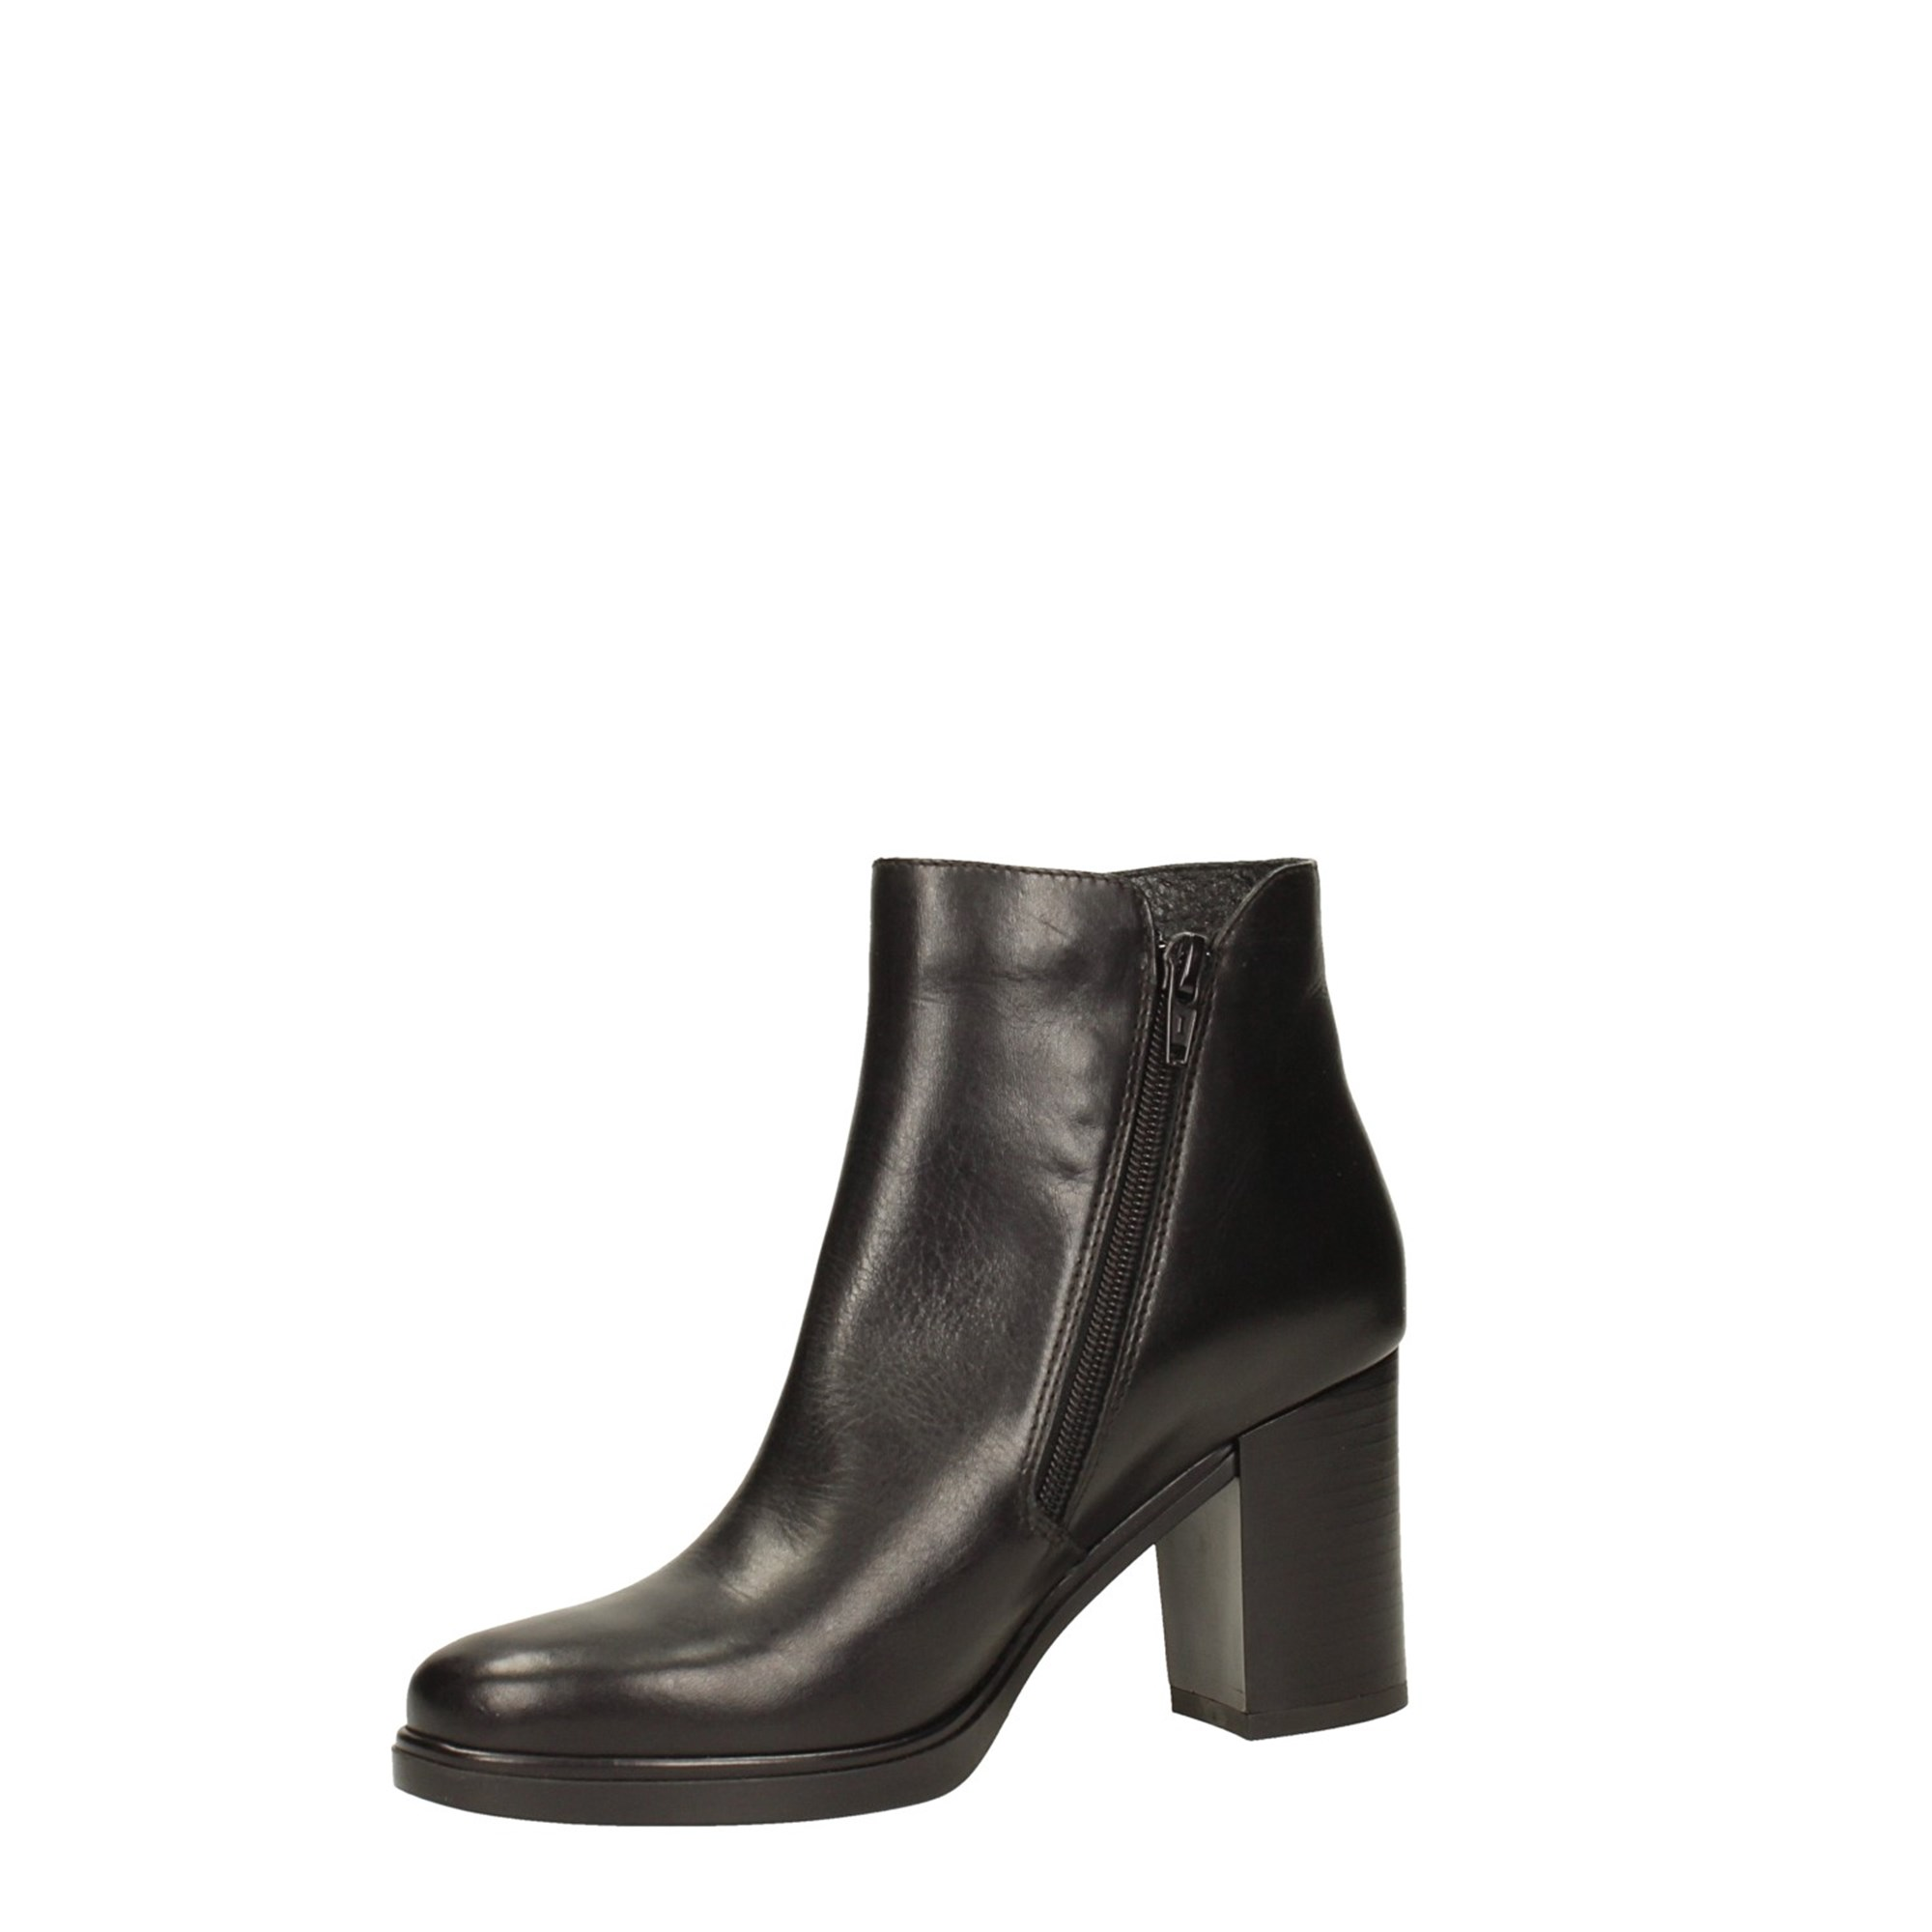 Tata Italia Shoes Woman Stivaletti 1244/I20